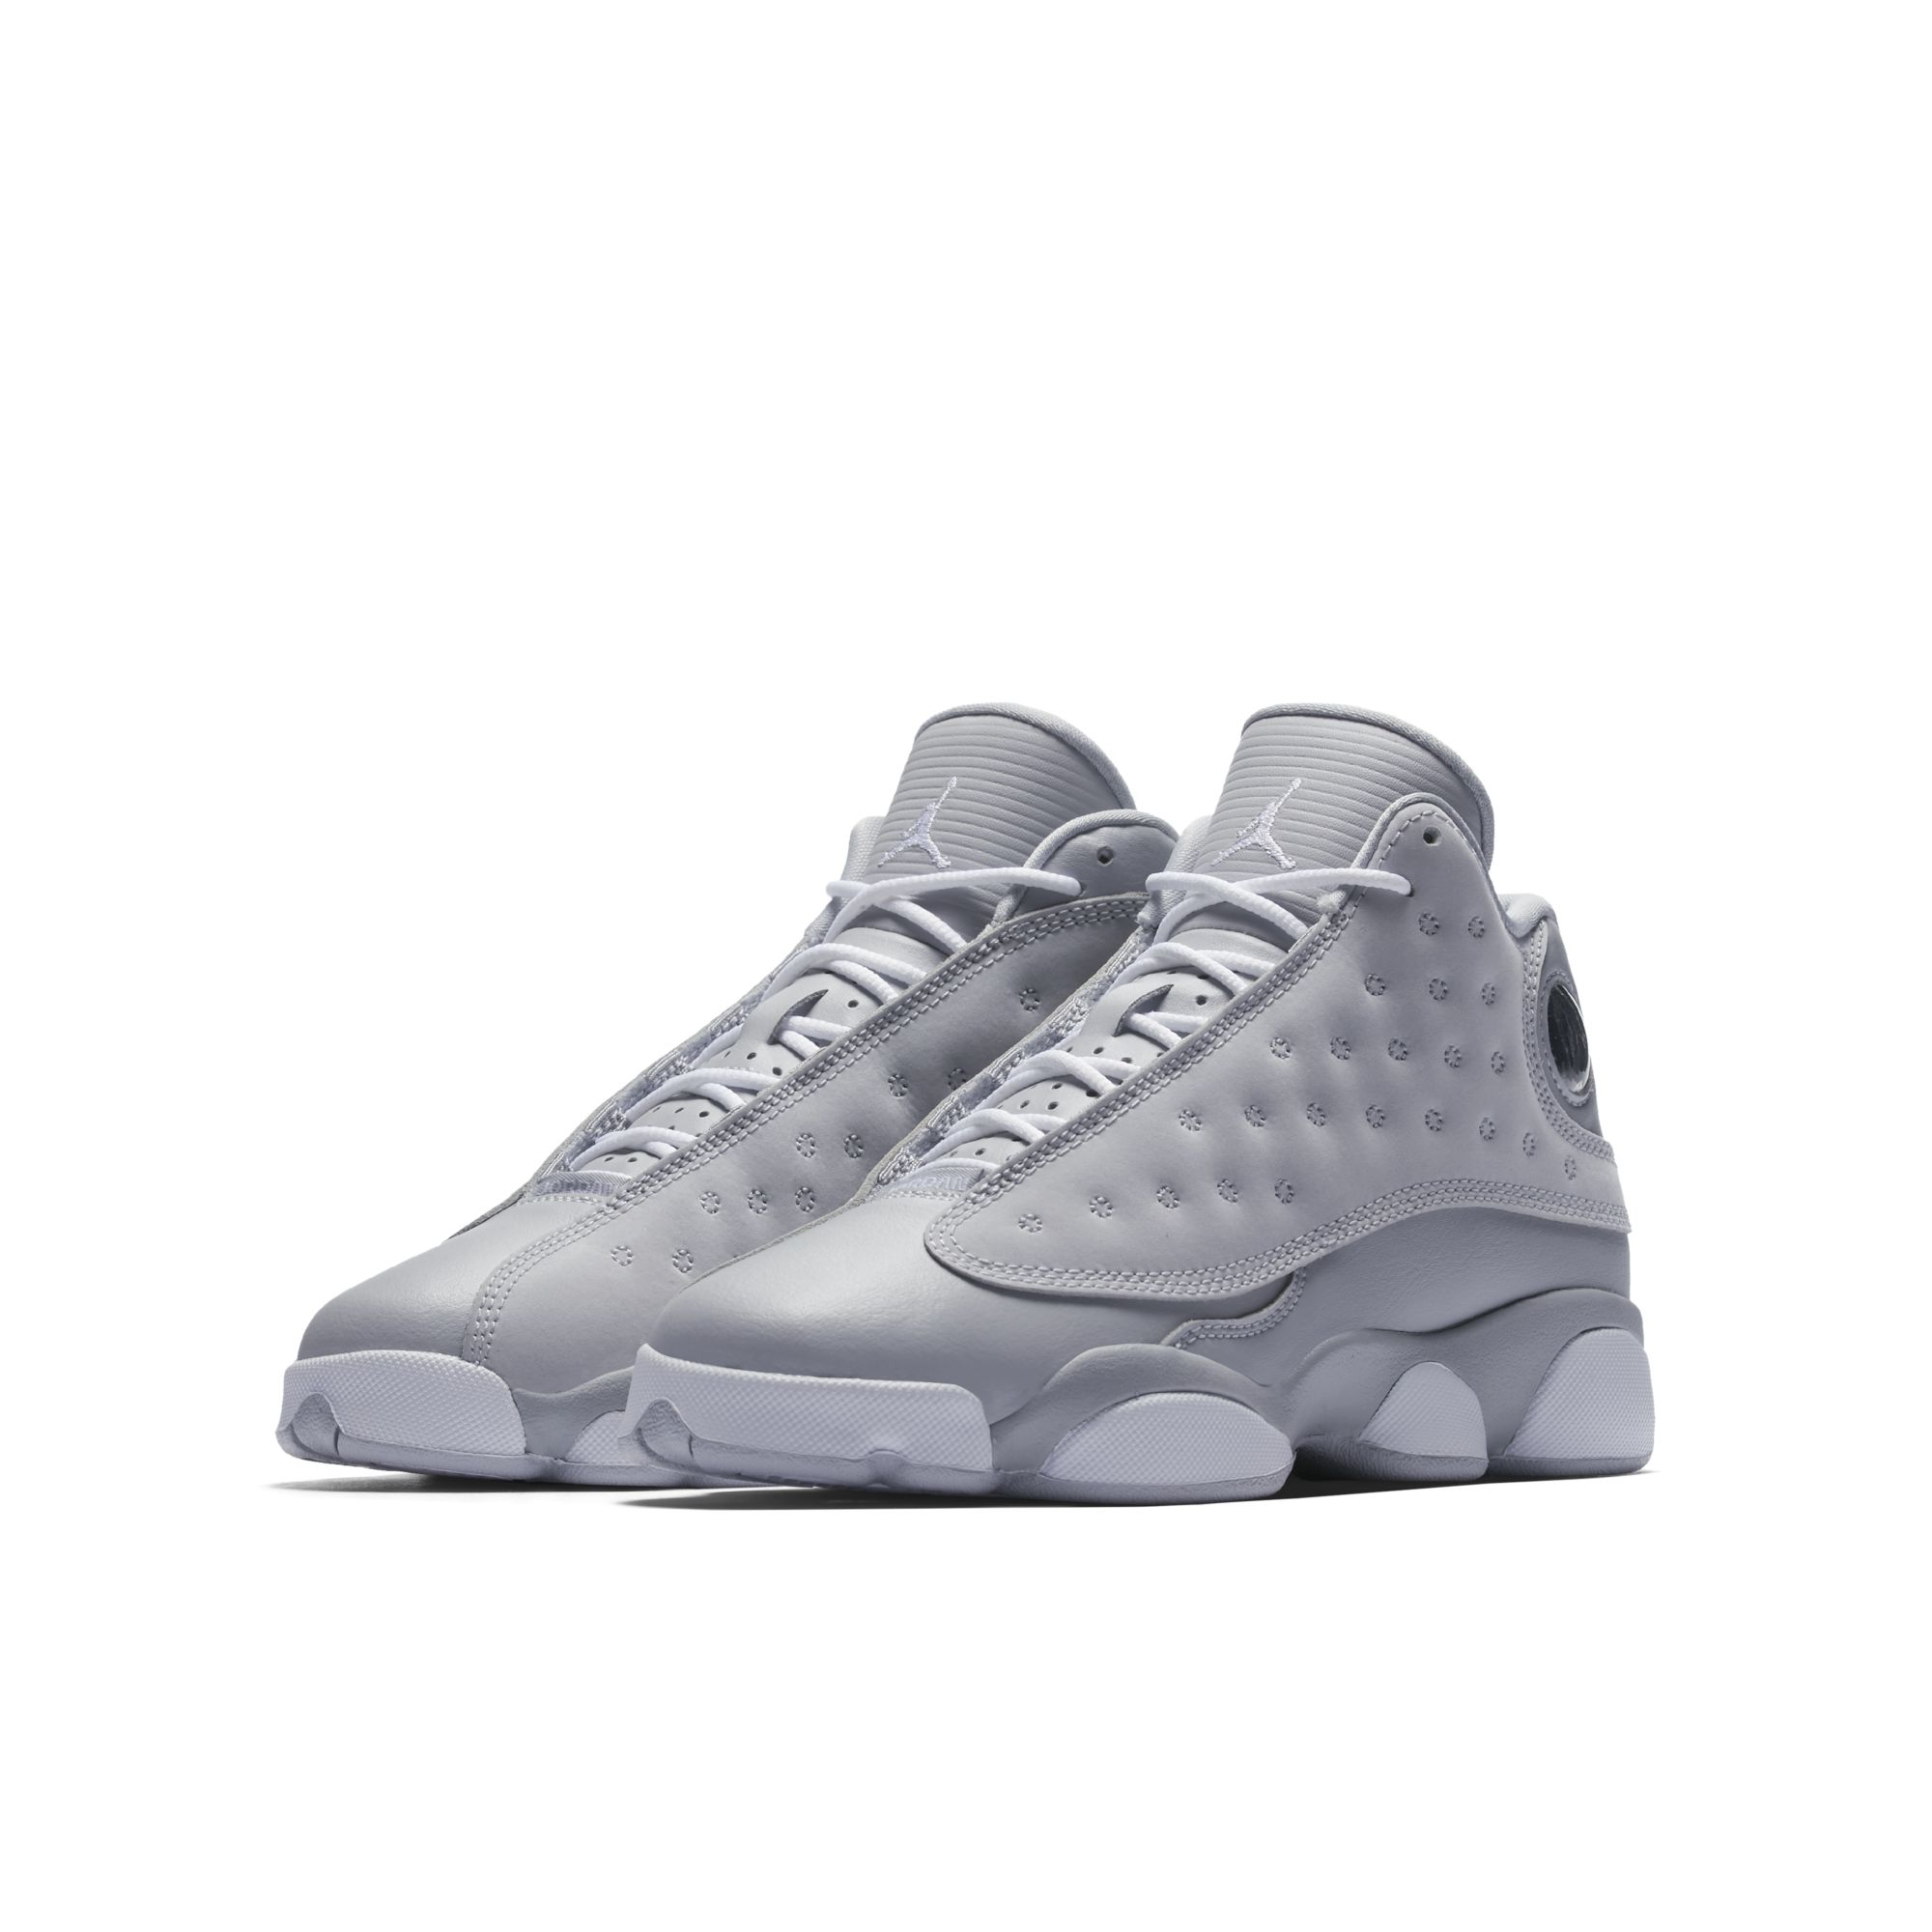 07e36a59787 A New Air Jordan 13 Retro for Back to School - WearTesters